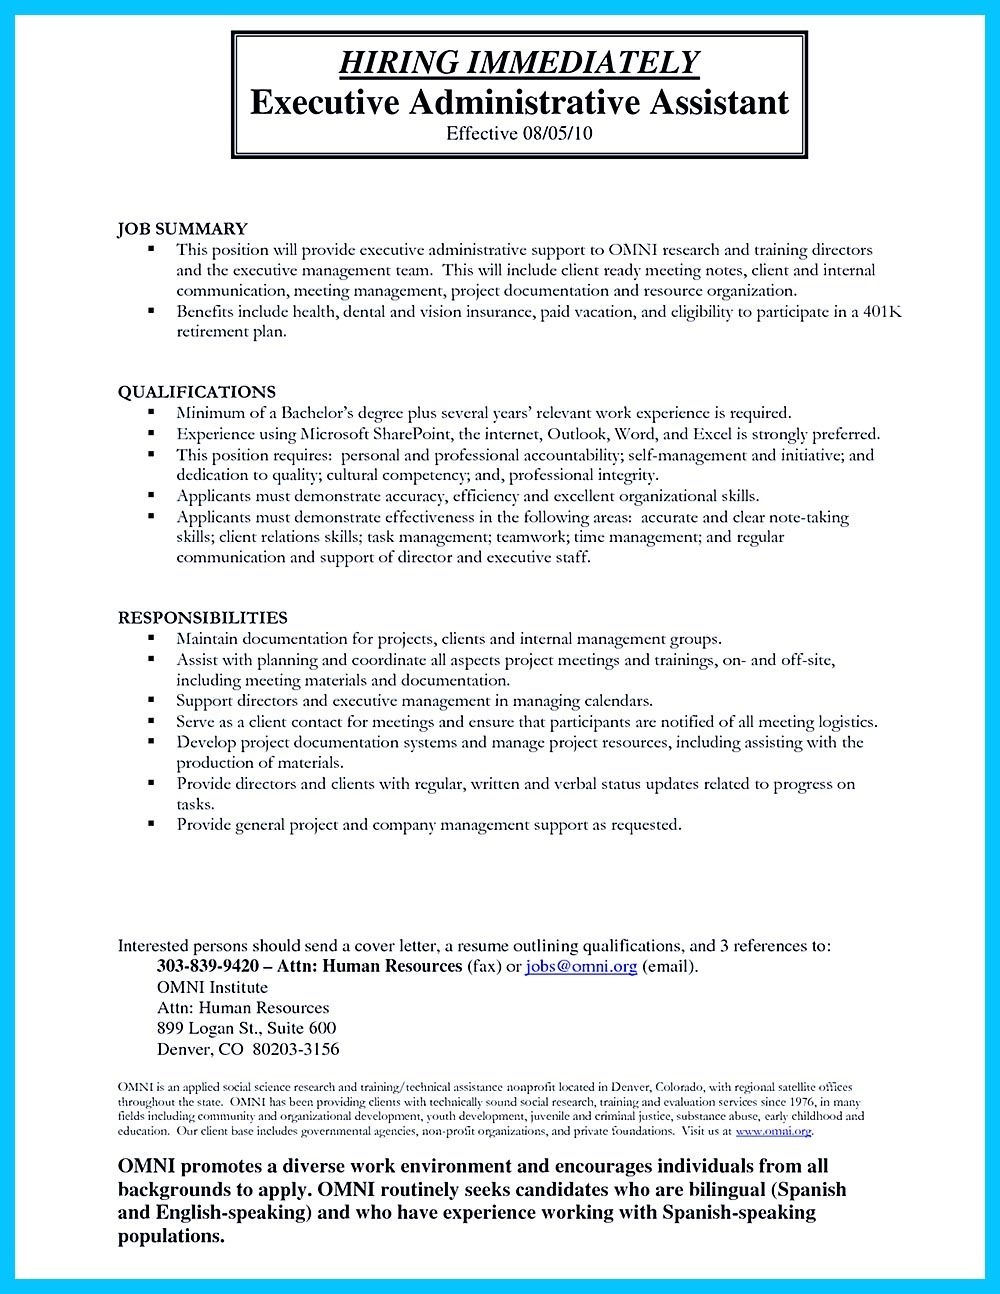 Administrative Assistant Resume Sample Inspiration In Writing Entry Level Administrative Assistant Resume You Need To .